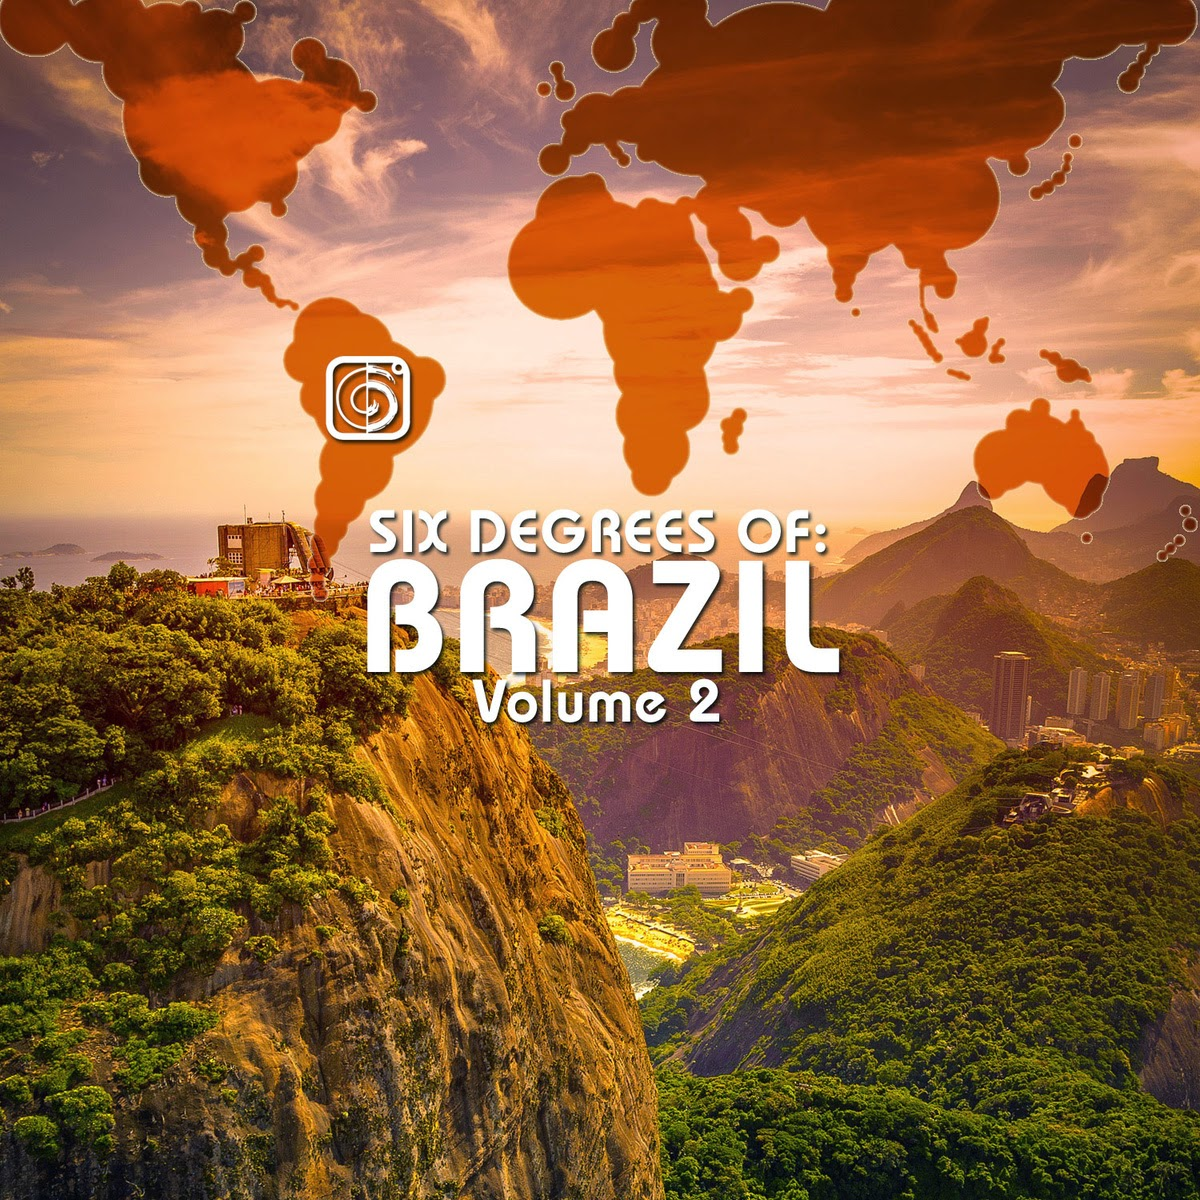 http://www.d4am.net/2014/06/six-degrees-of-brazil-volume-2.html